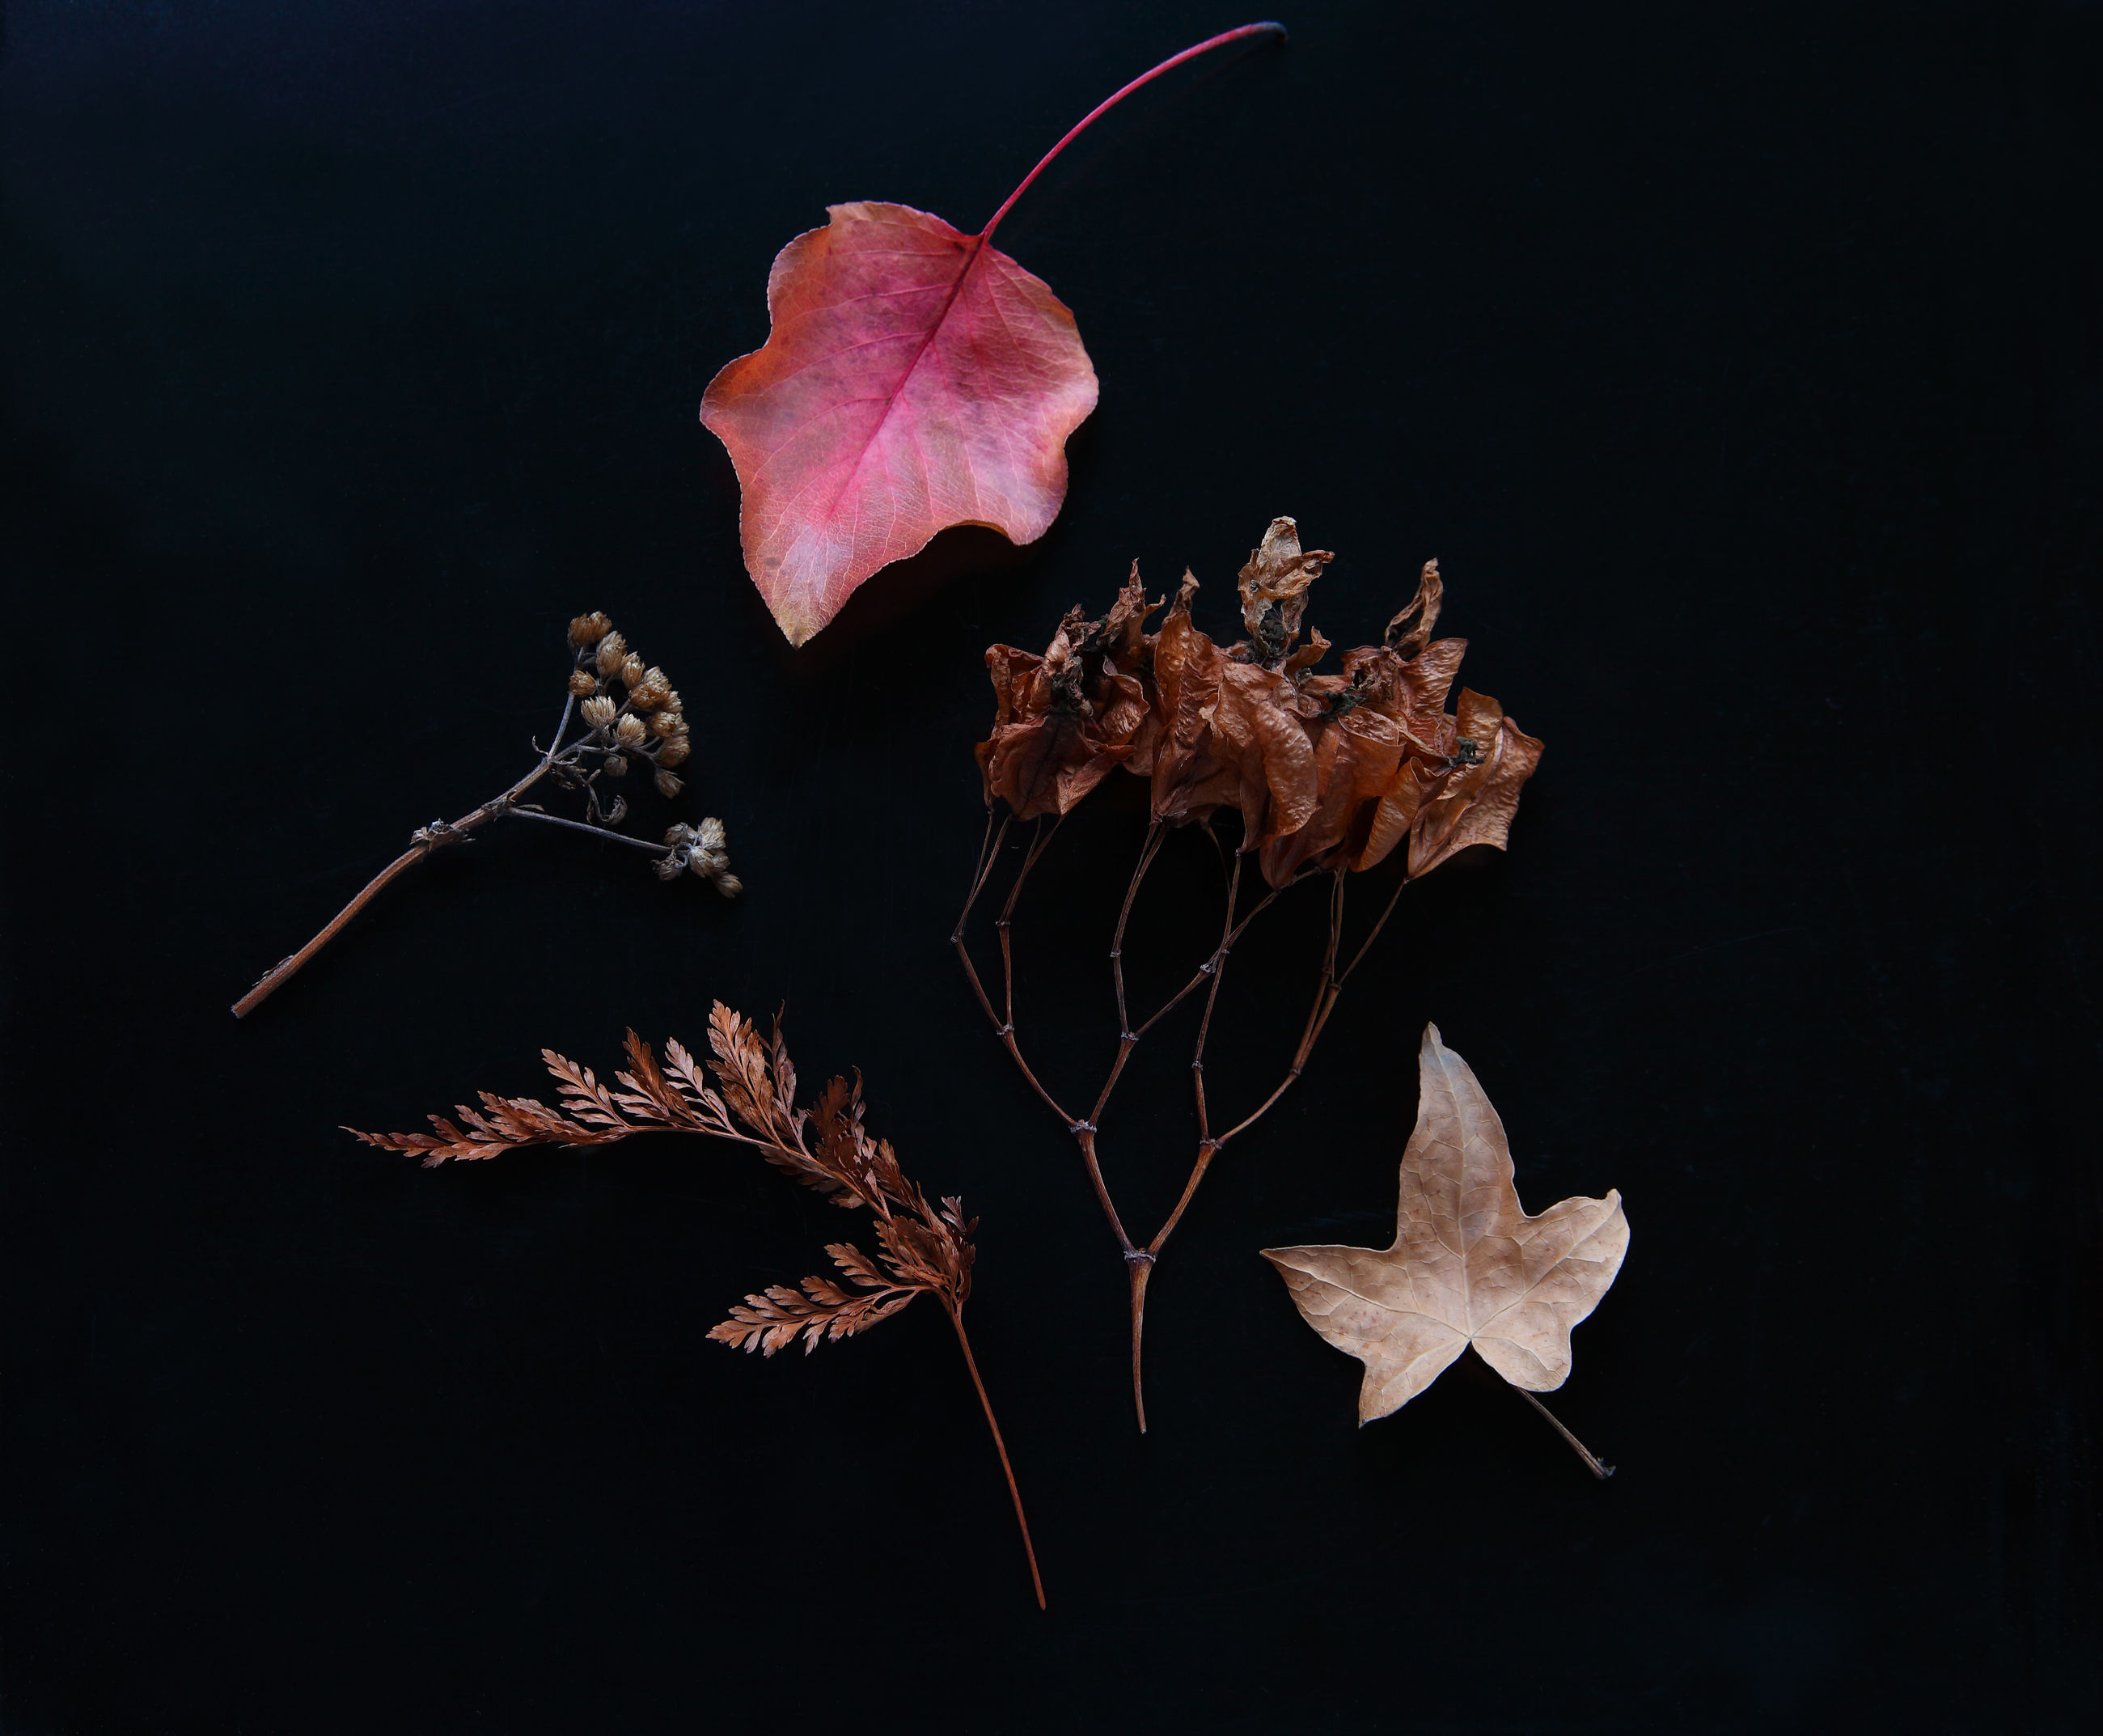 An arrangement of autumn leaves, seed pods and fern frond on a dark background